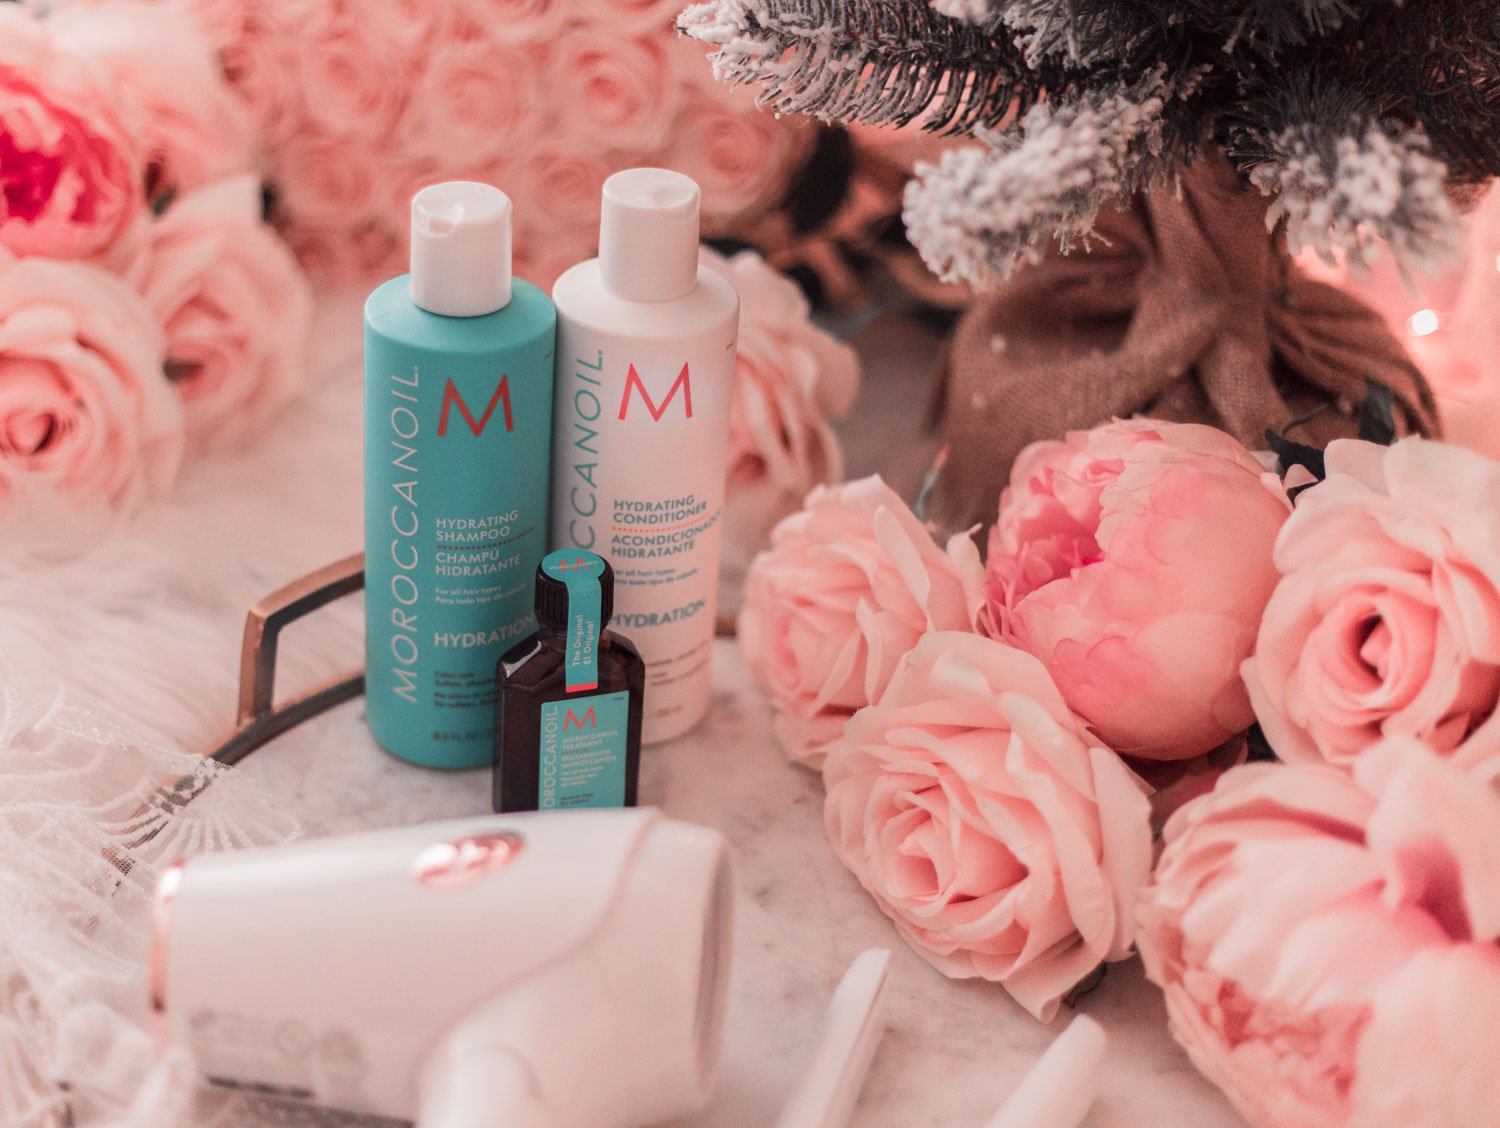 Elizabeth Hugen of Lizzie in Lace shares the moroccanoil holiday gift set for Christmas!